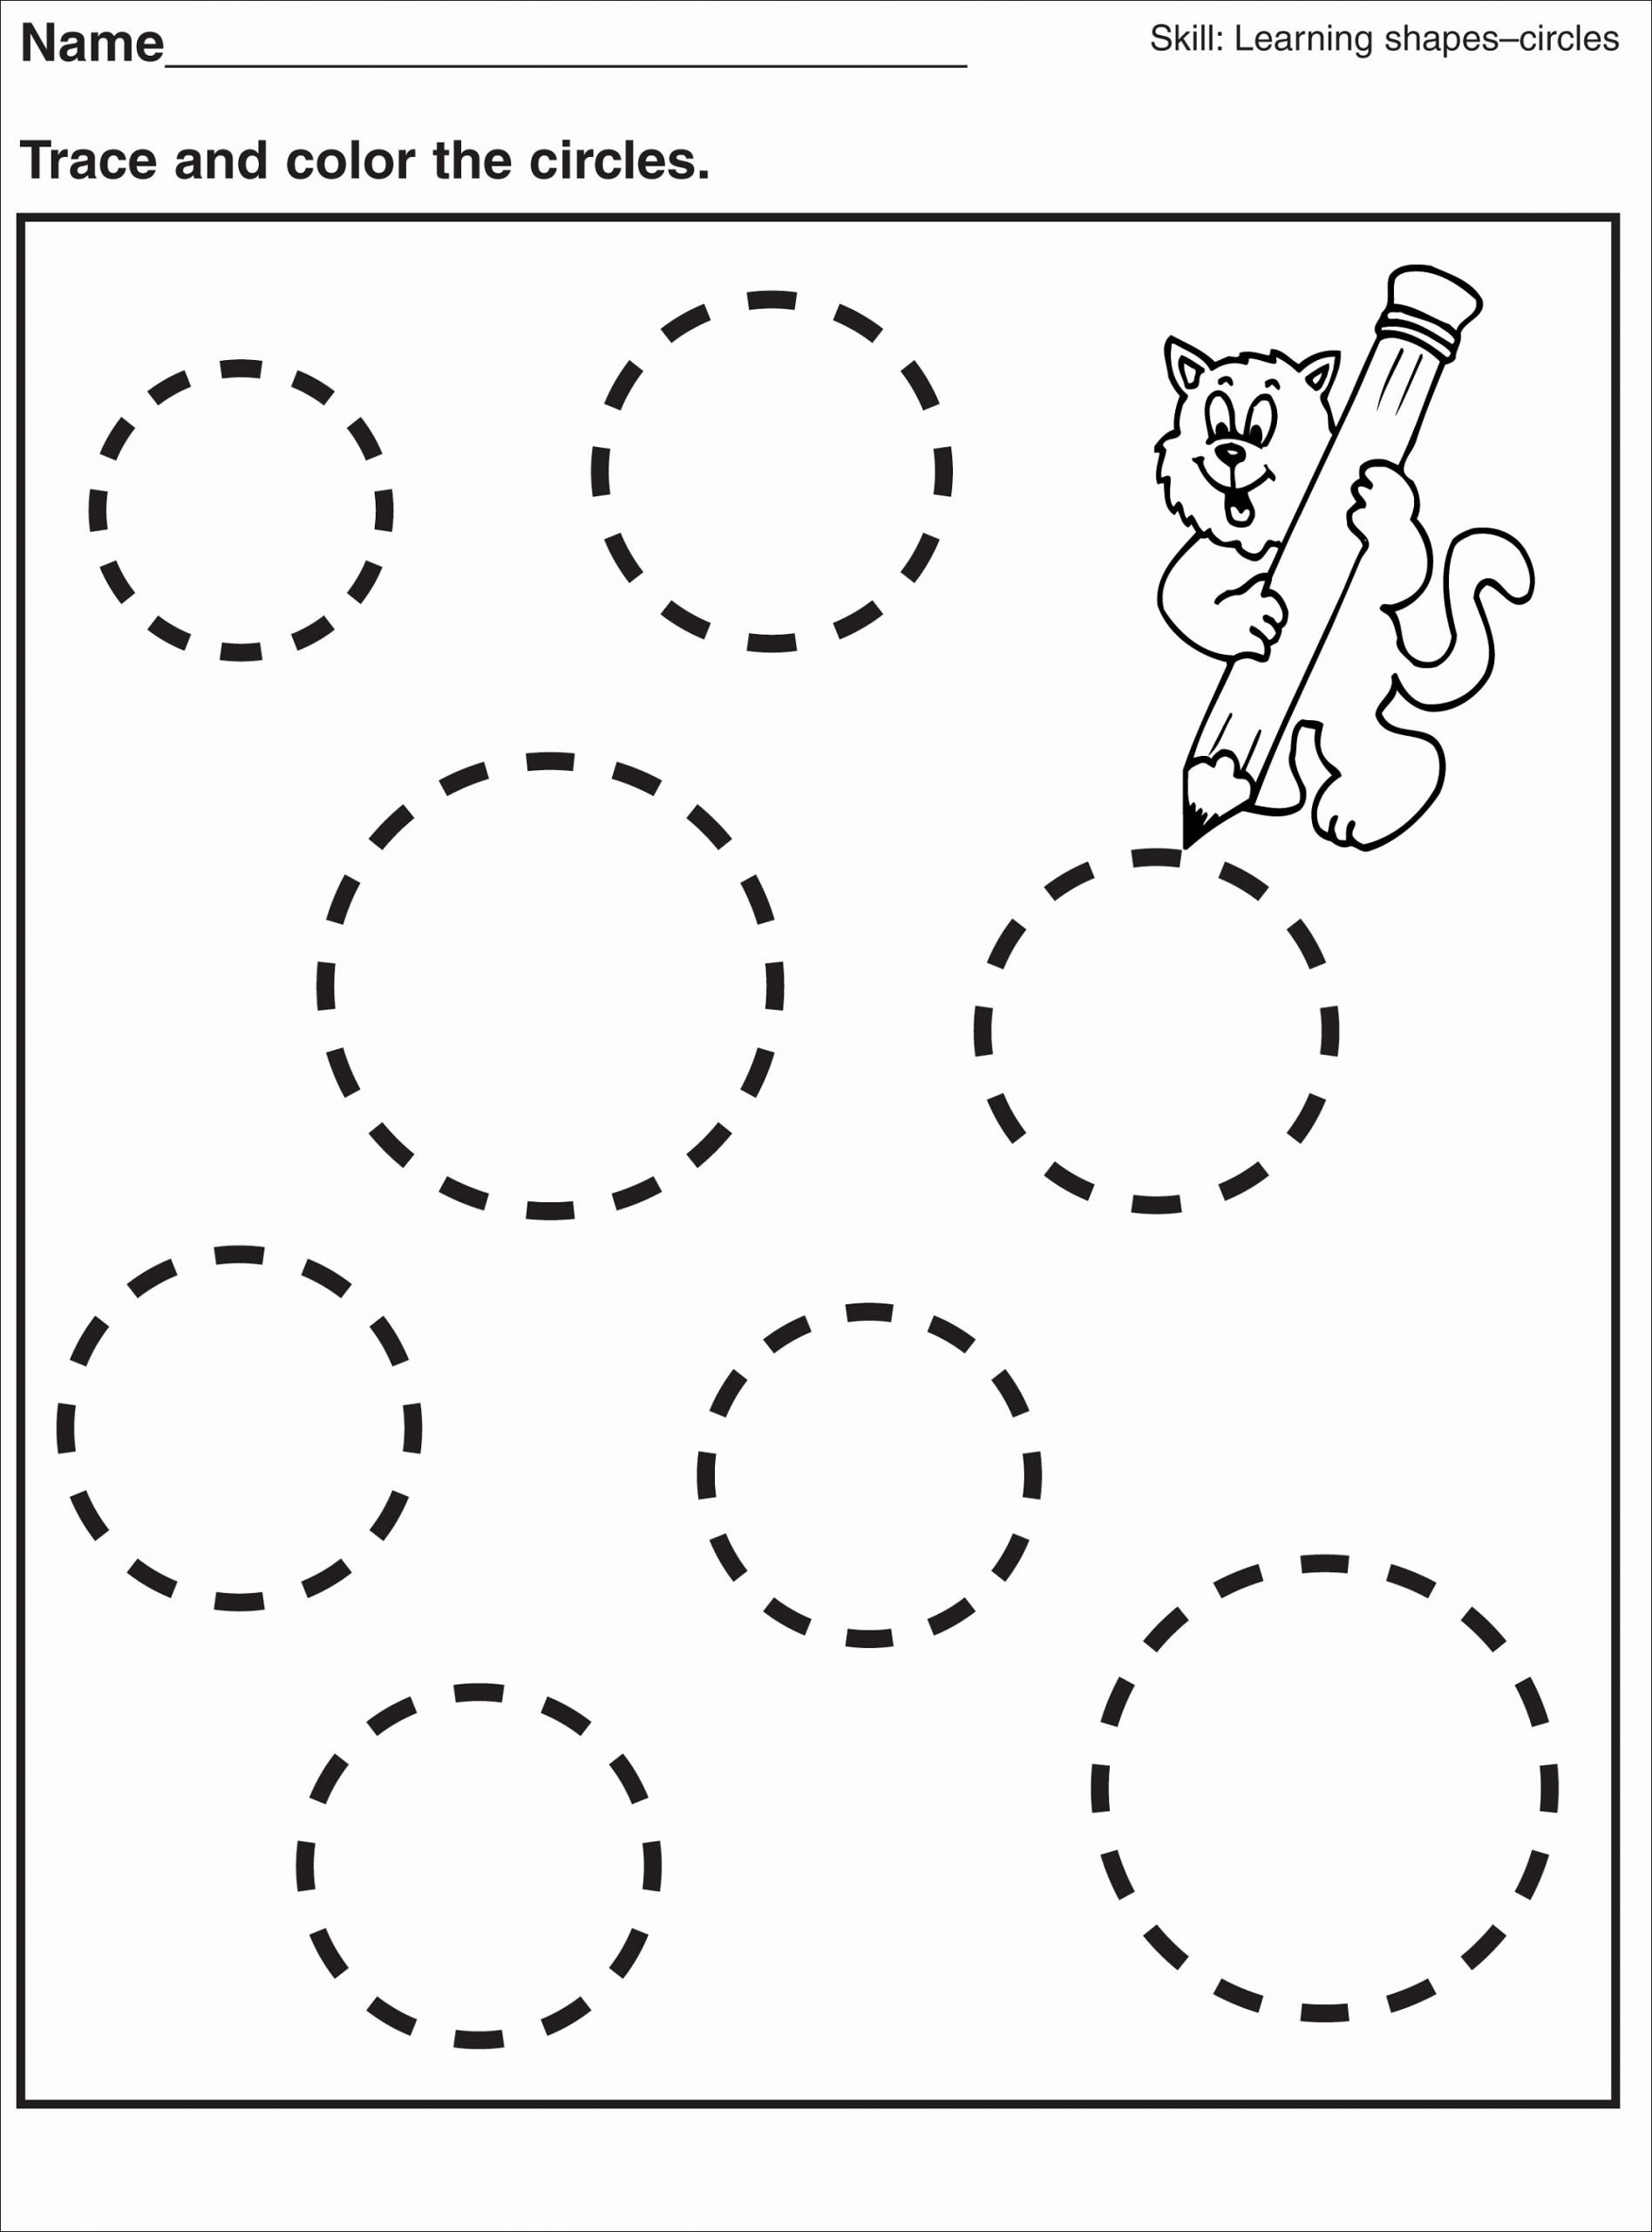 Circle Shape Worksheets for Preschoolers Fresh Tracing Pages for Preschool